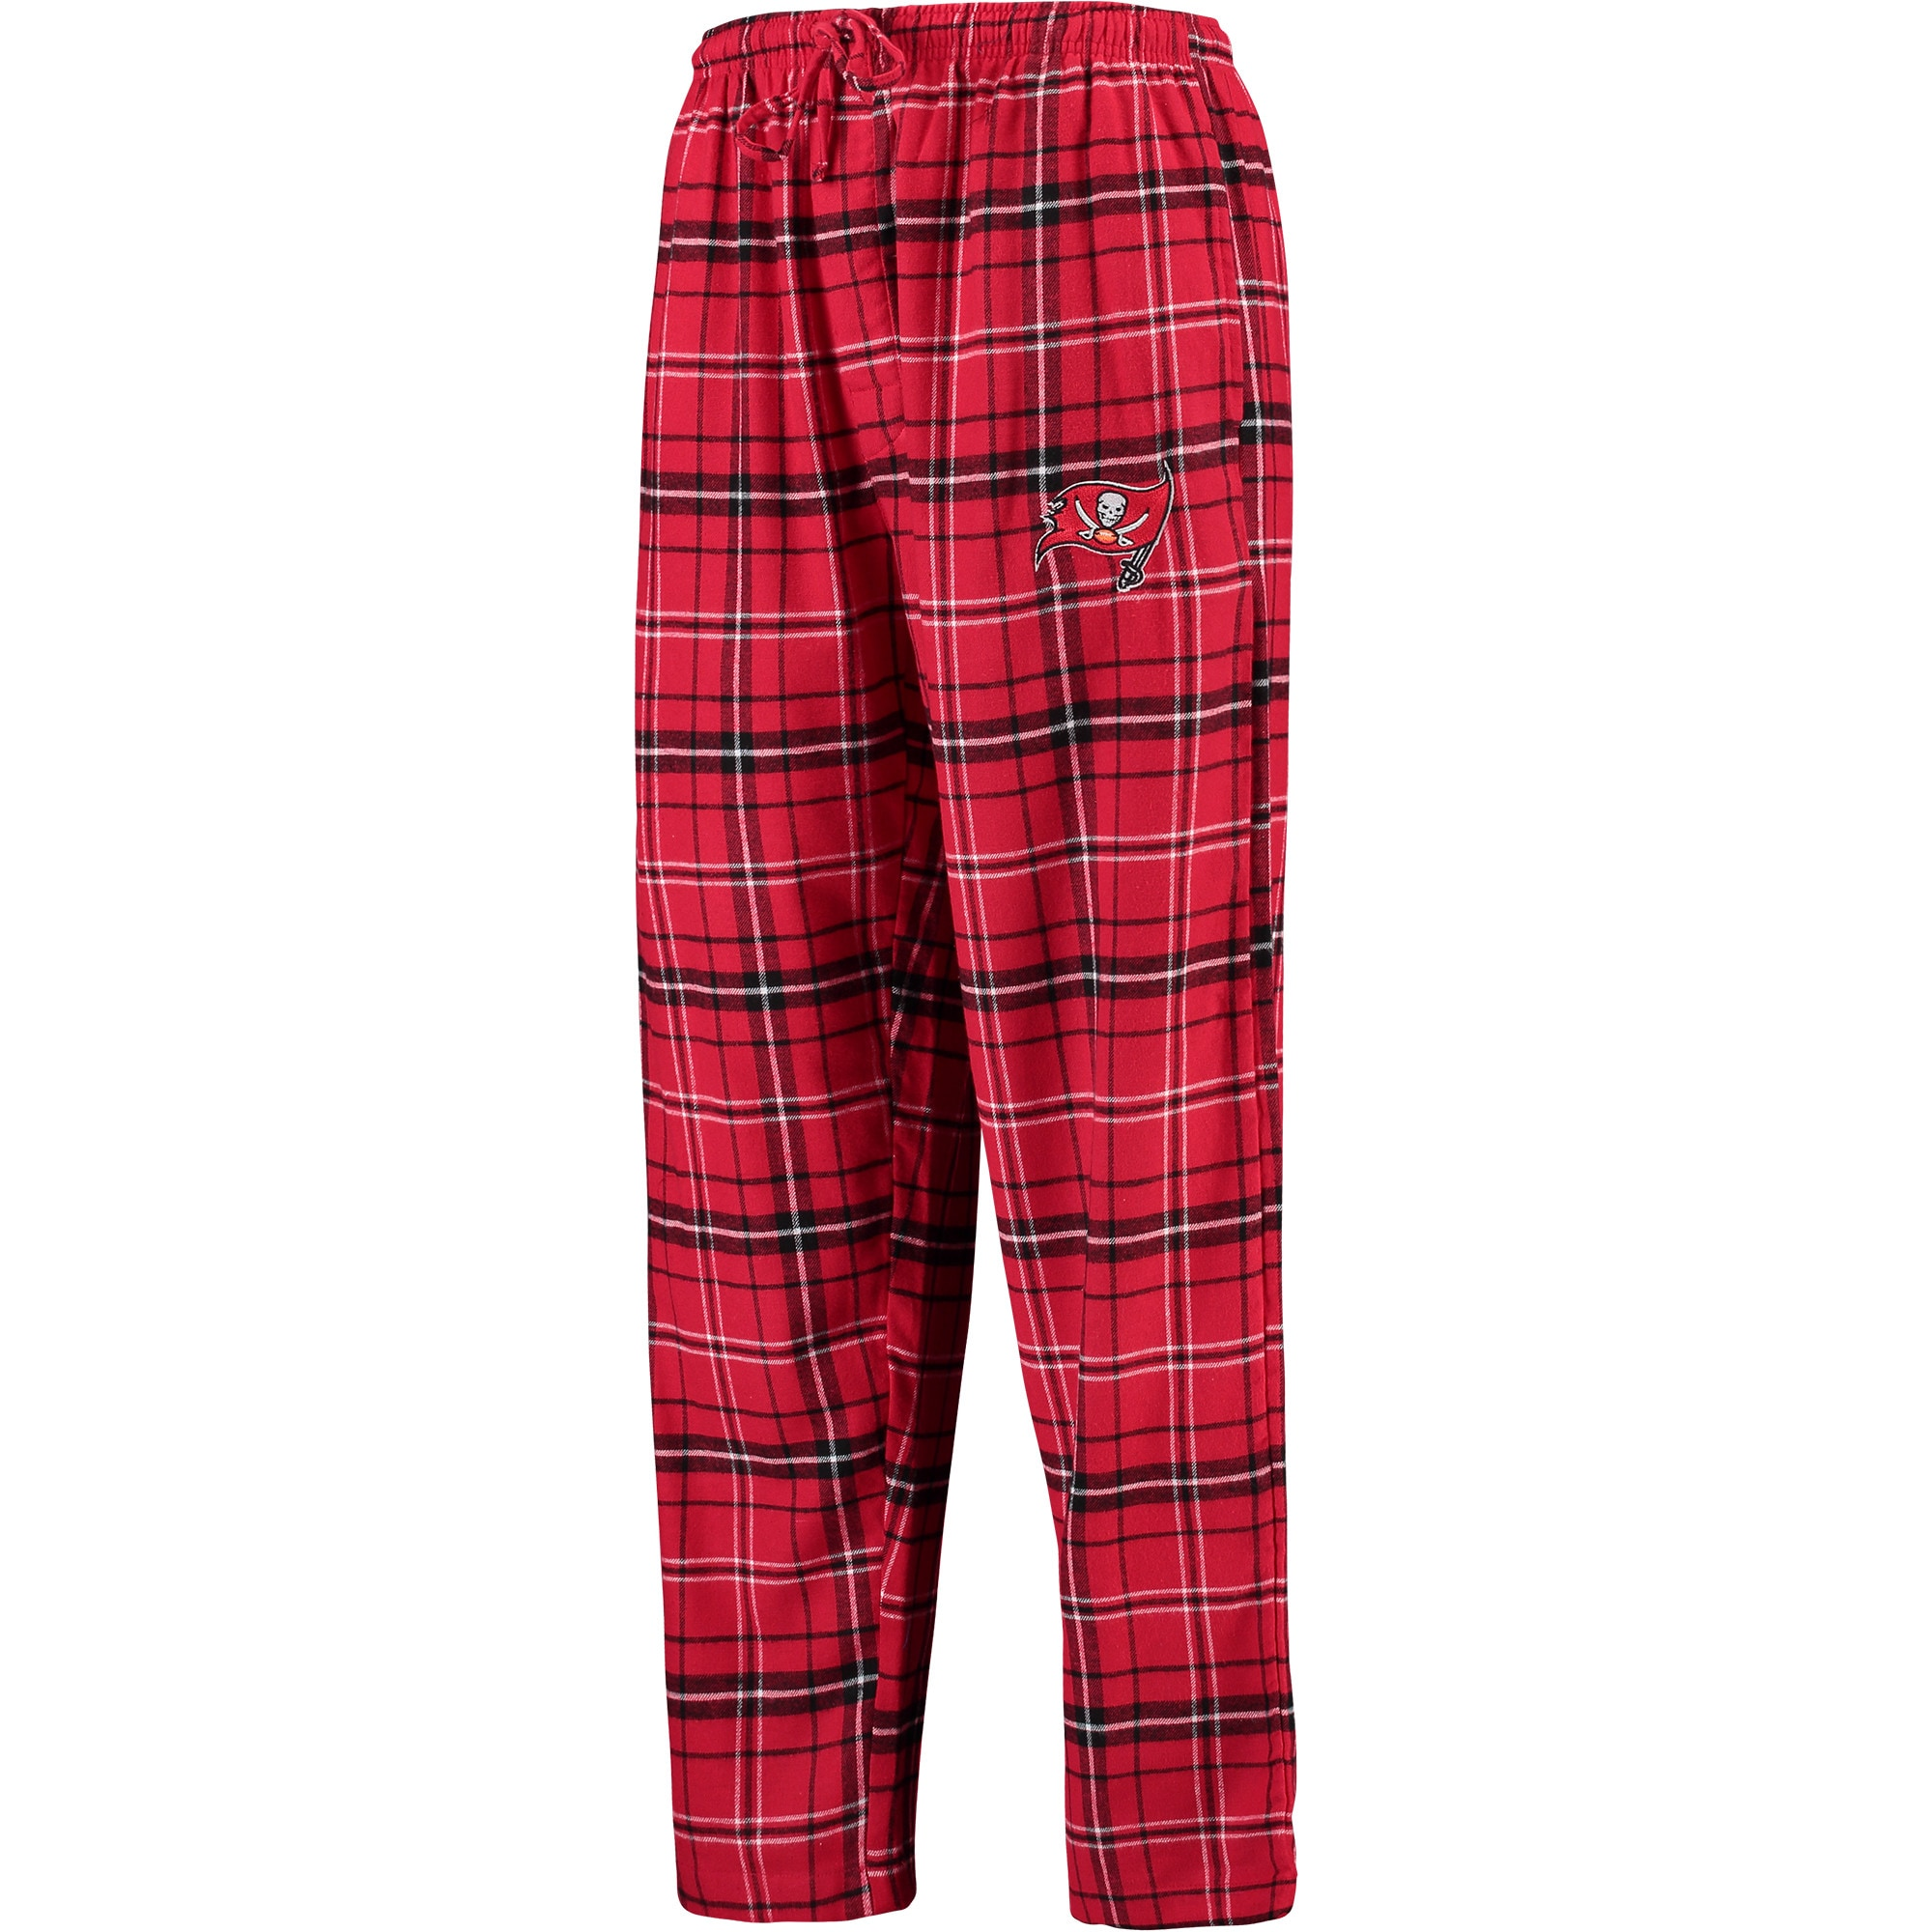 Tampa Bay Buccaneers Concepts Sport Men's Ultimate Plaid Flannel Pants - Red/Black